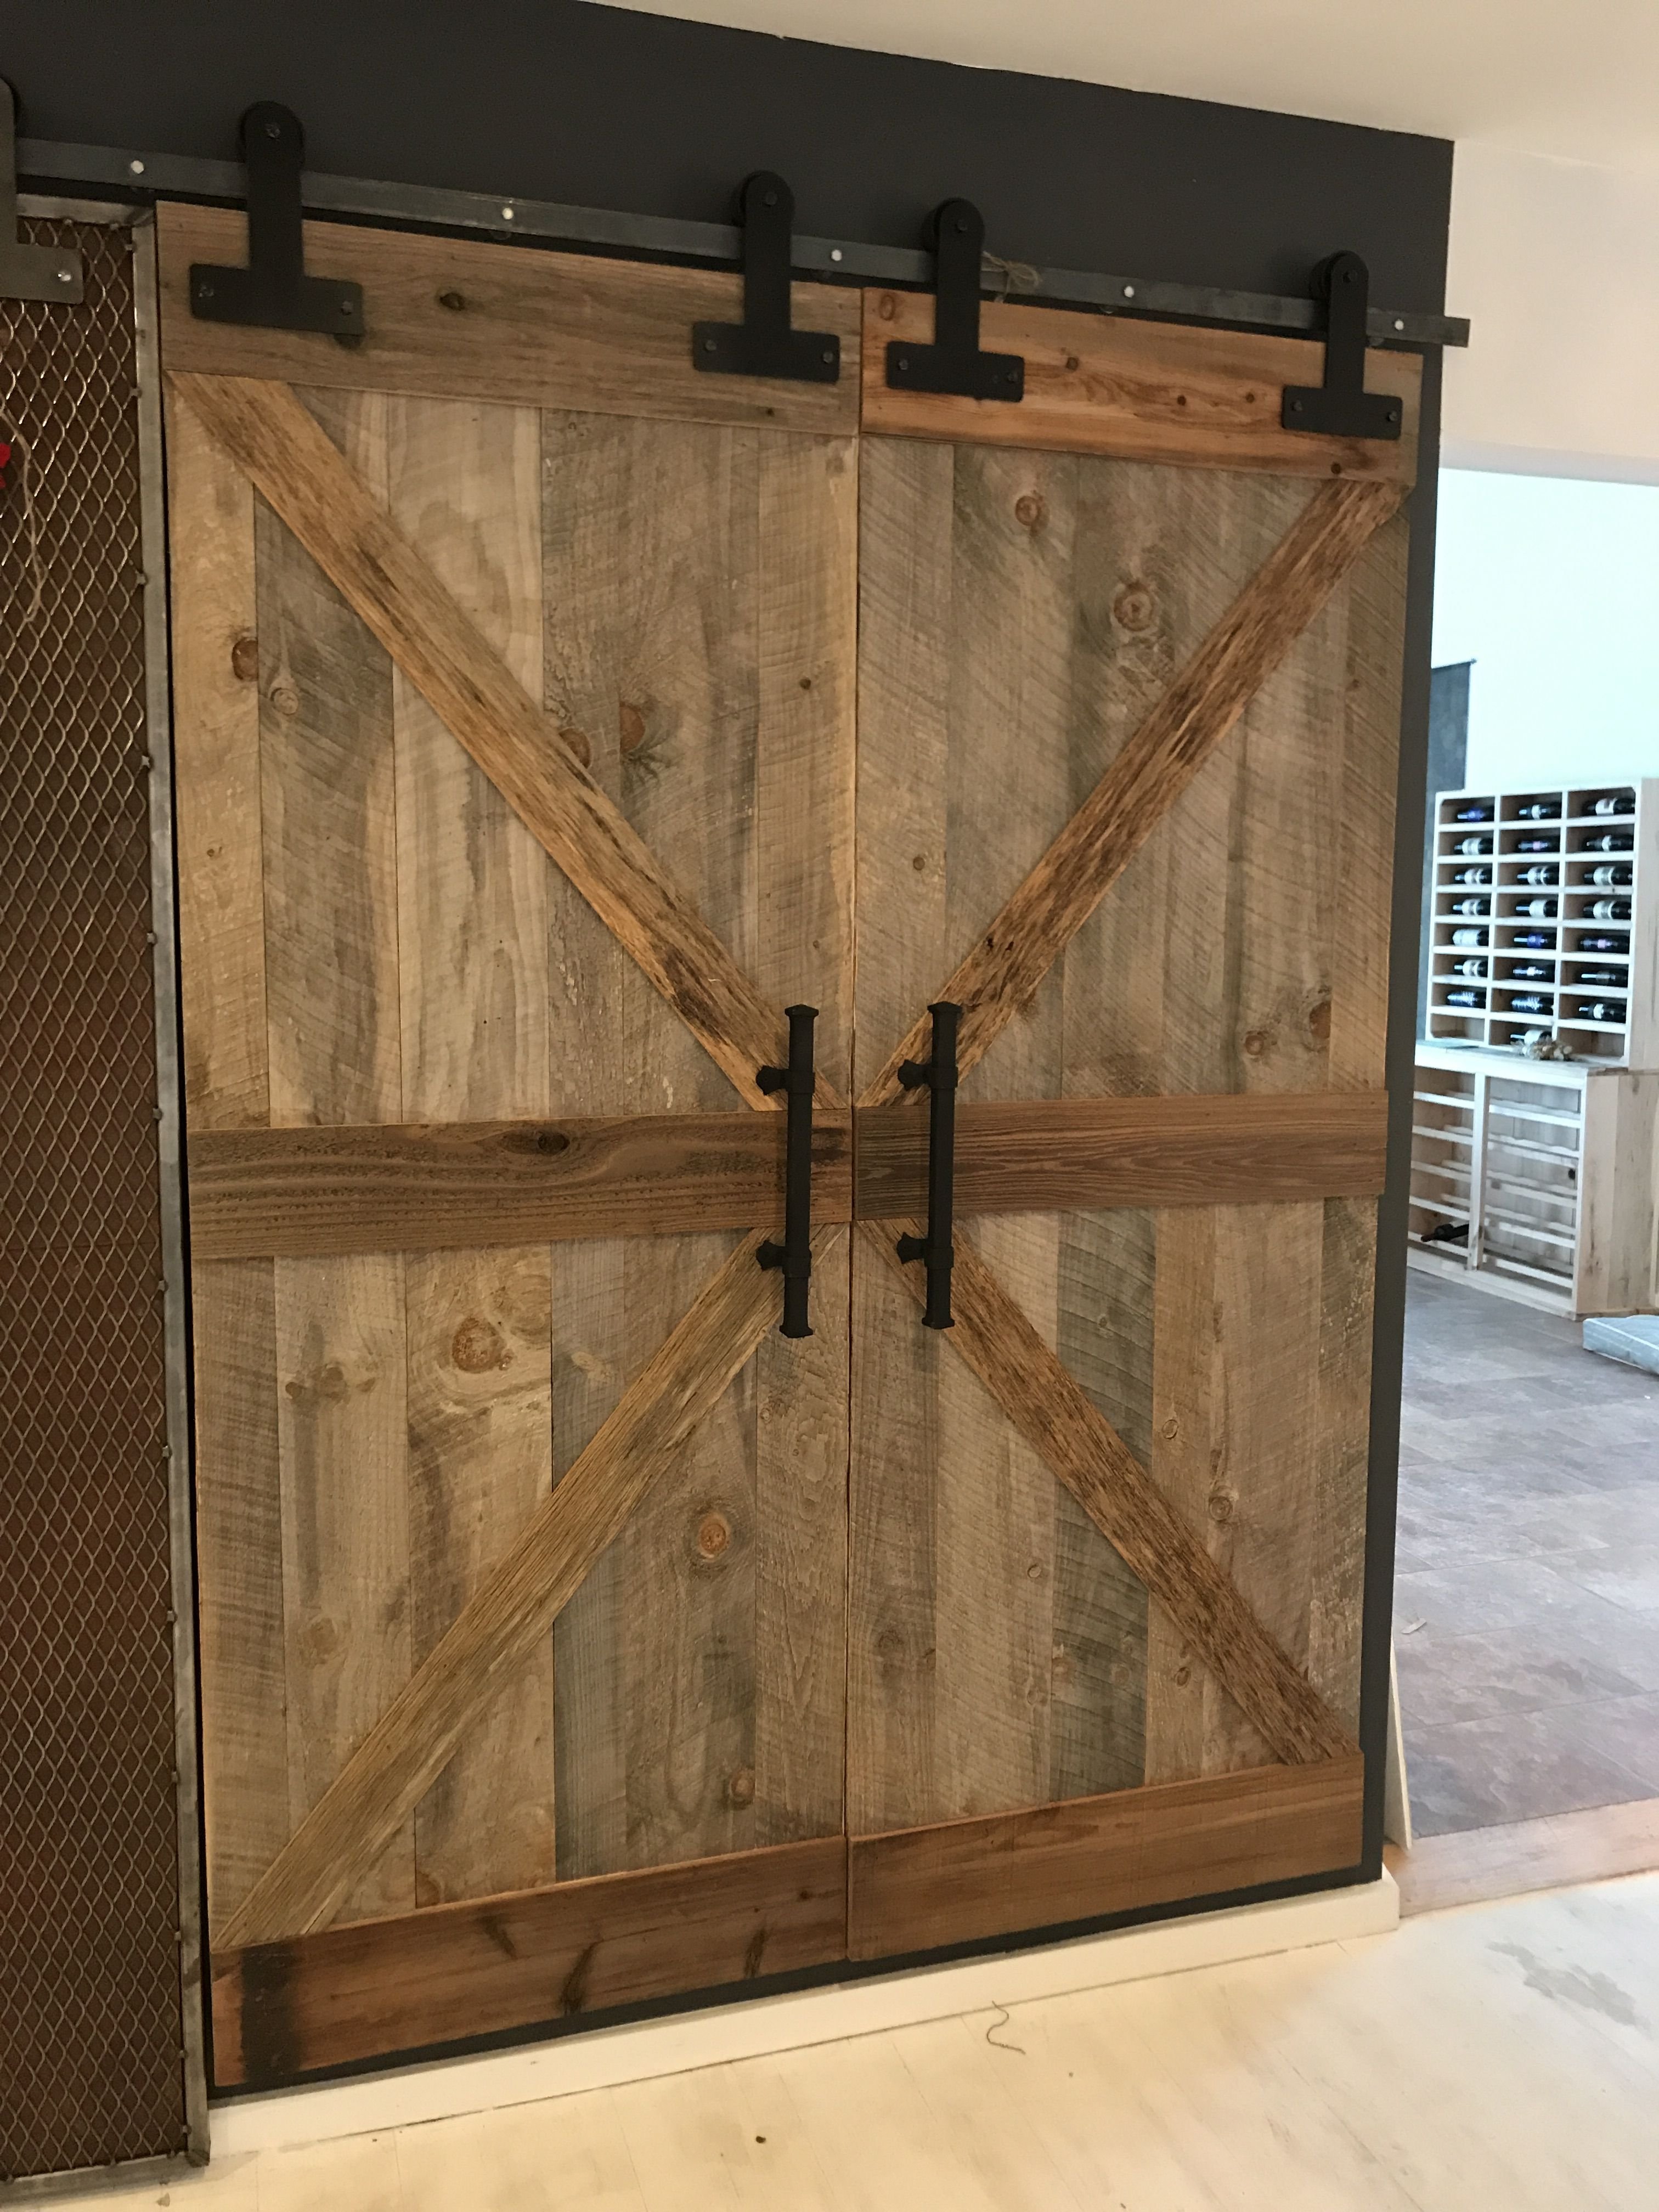 Our Reclaimed Wood Barn Door Harbor Gray With Rustic Accent Boards